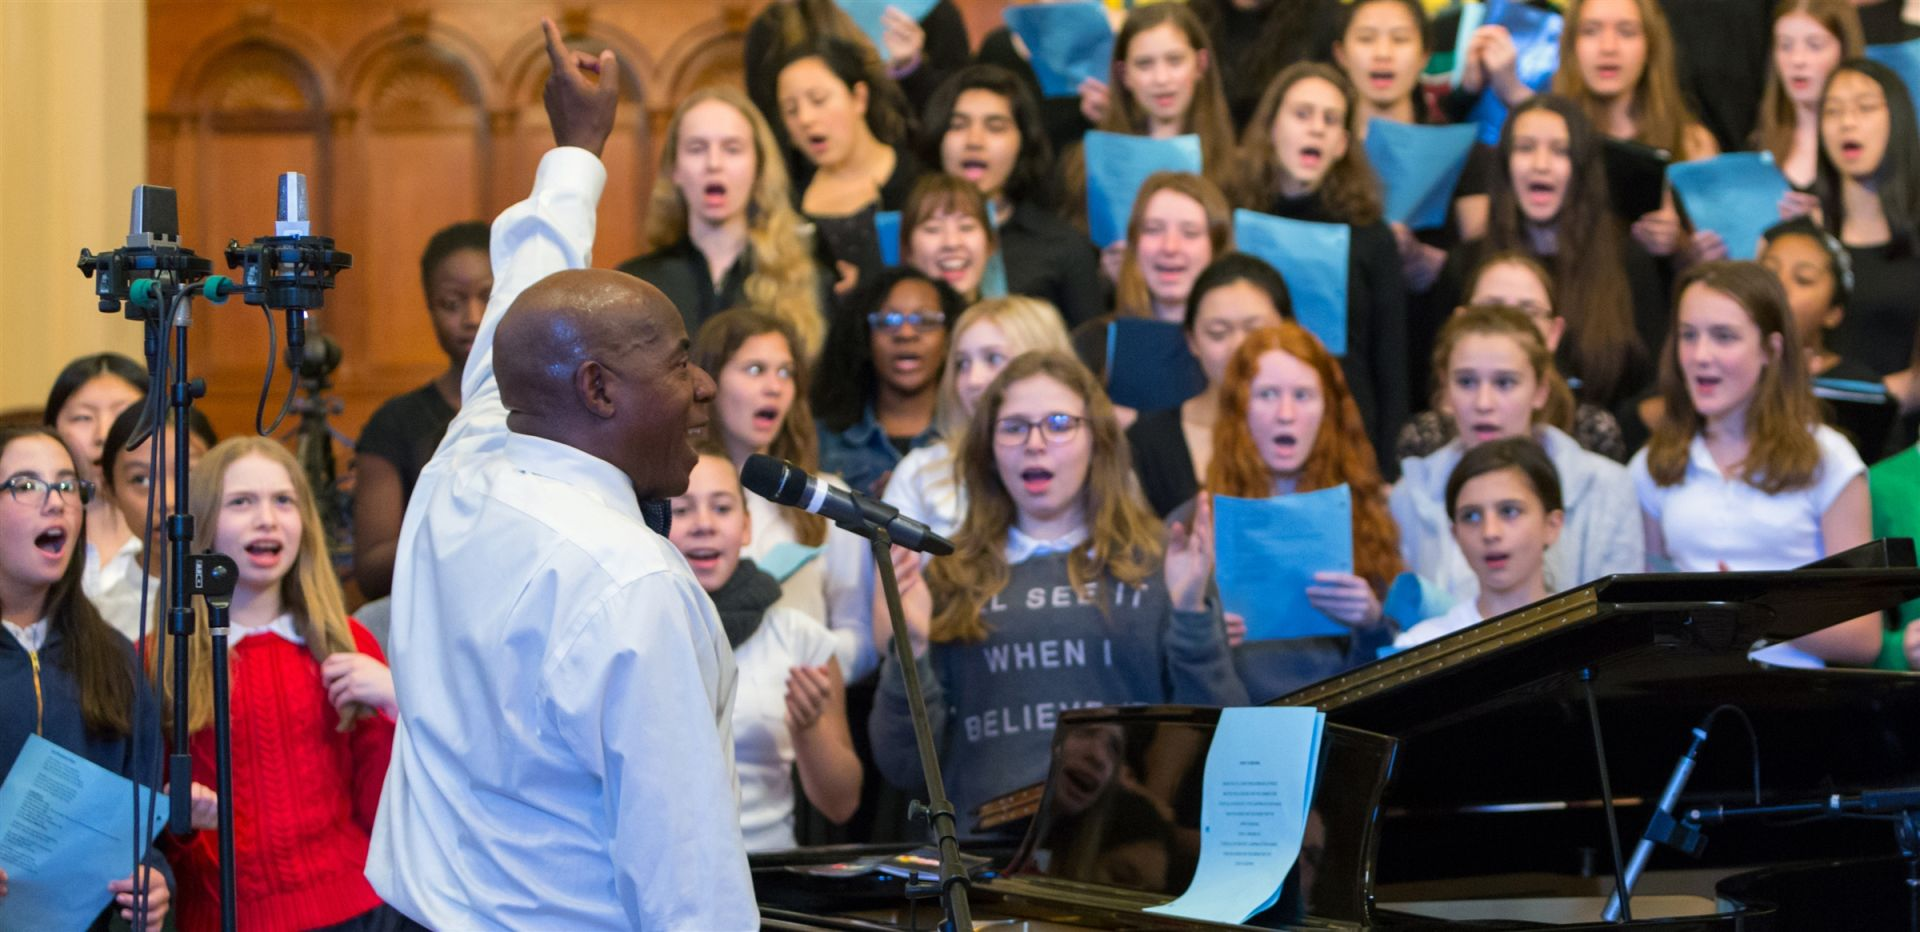 Michael Brown, a composer, pianist, and singer, visits Spence to train students in Gospel music.